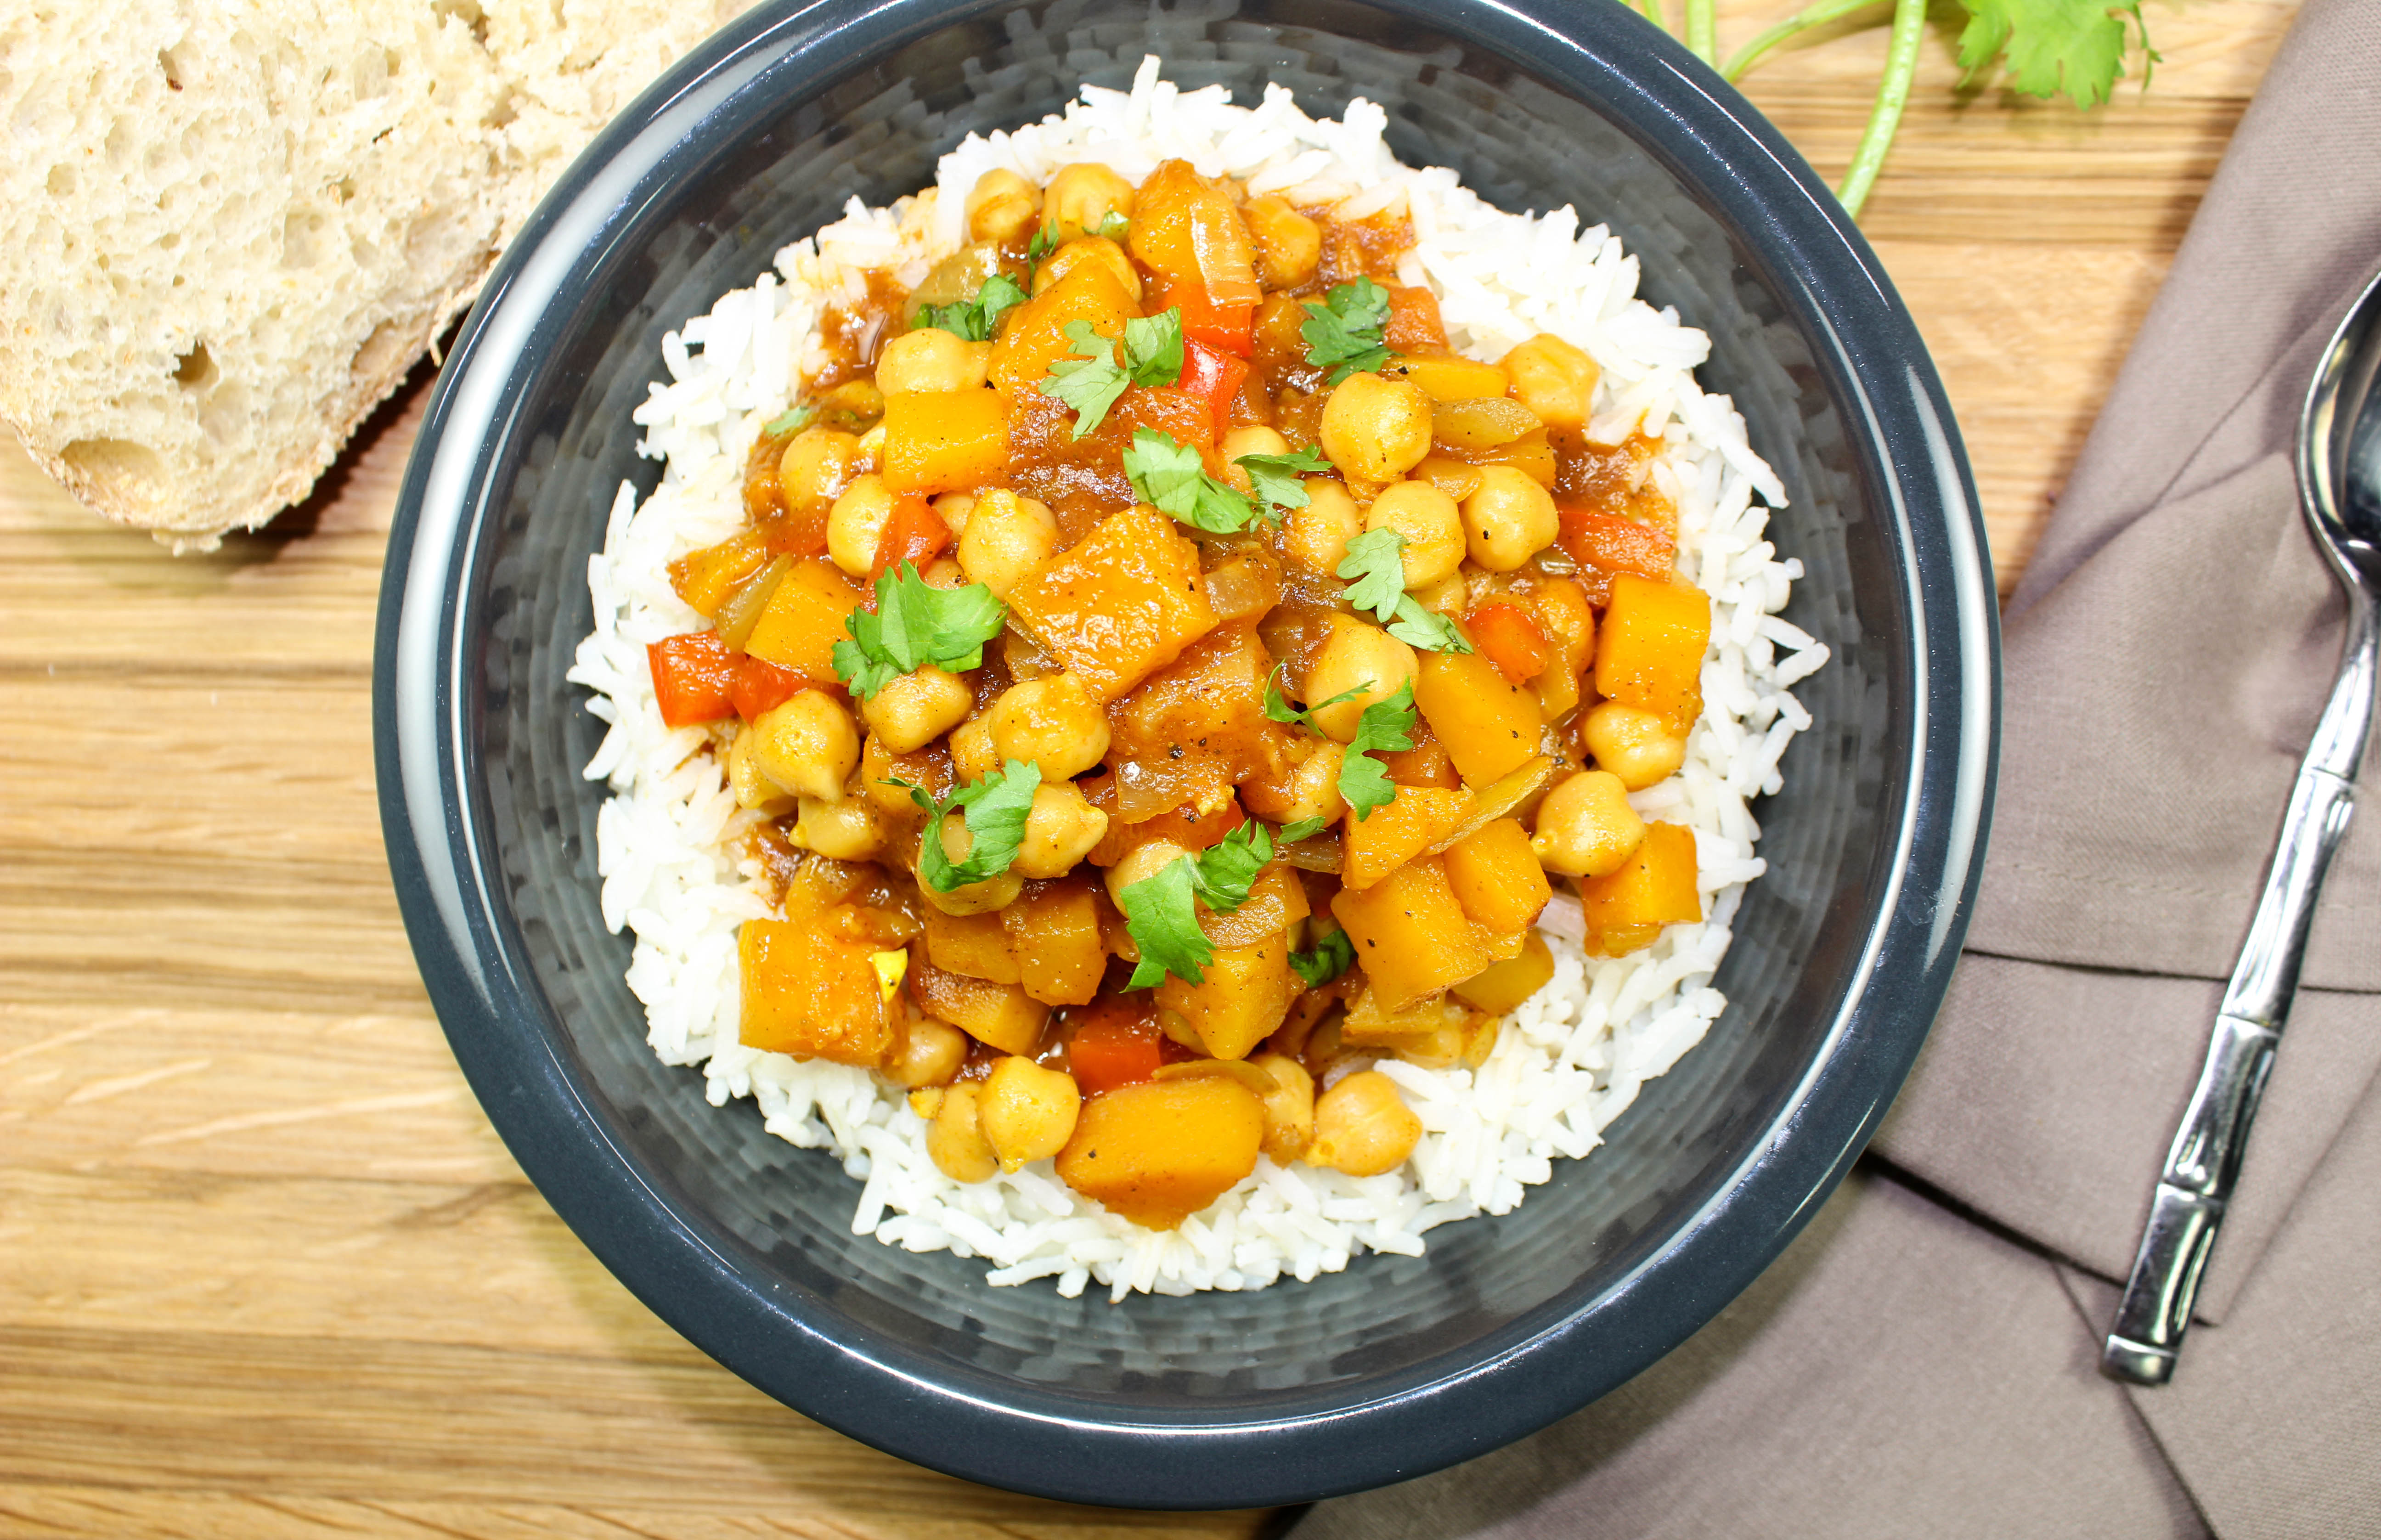 Indian Chickpea Stew-Unique twist on vegetable stew! Delicious Indian spices mixed with hearty vegetables is comfort in a bowl. Great for anyone who is a beginner to Indian food! Spices are sweet with just a hint of spice. Weight Watcher friendly (6 SmartPoints).